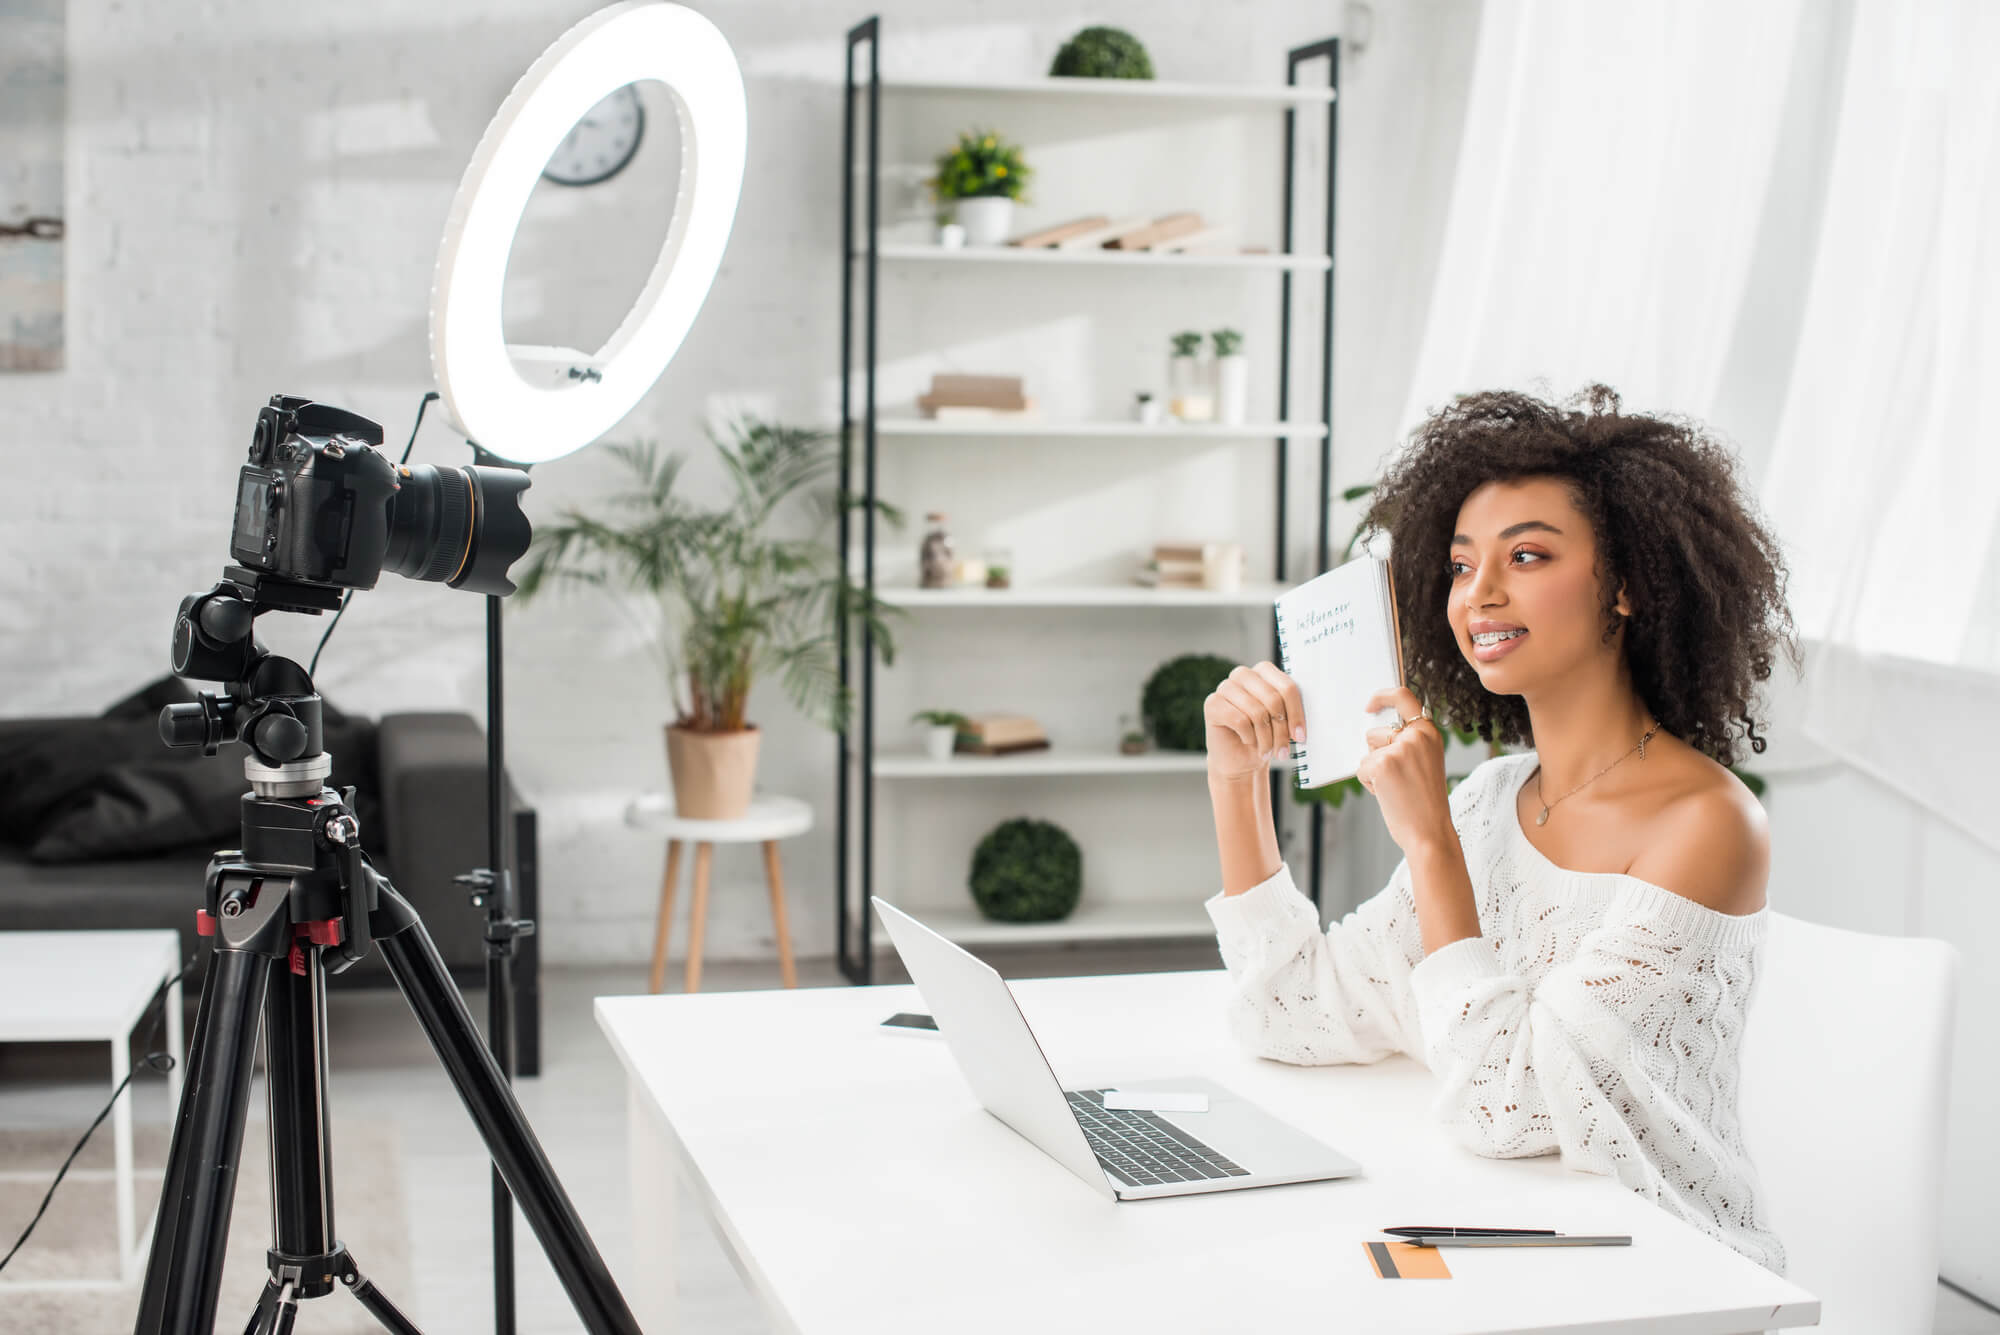 How can video help create multimedia content?